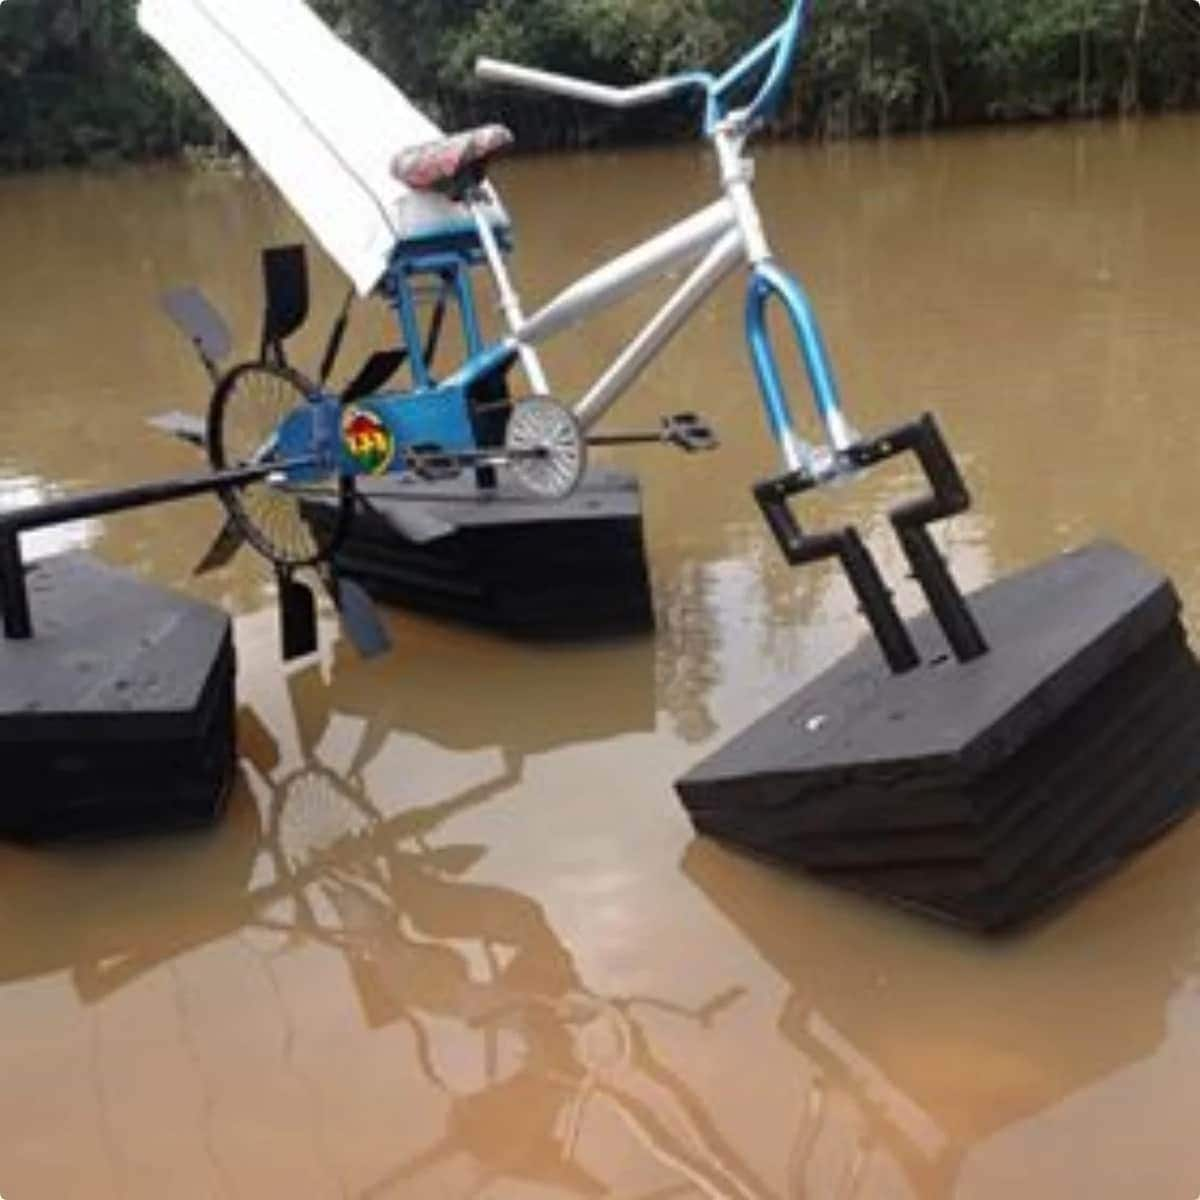 Ghanaian student builds bicycle meant for water